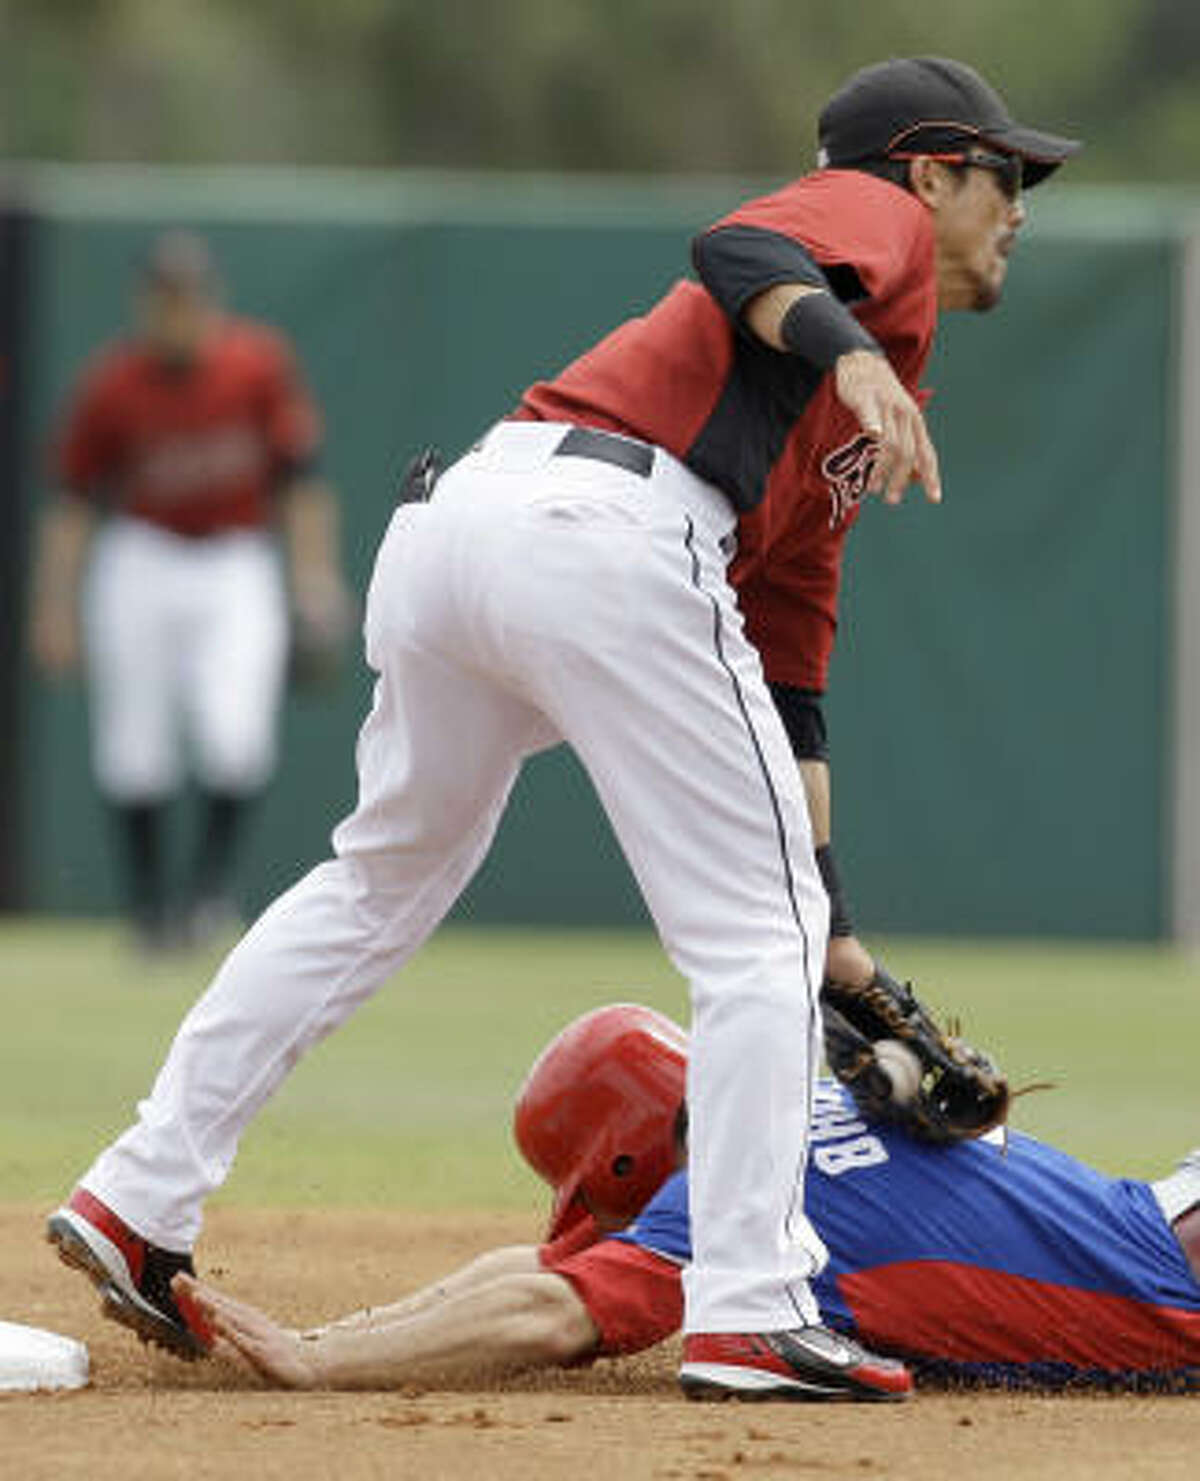 Phillies infielder Eric Bruntlett is tagged out by Astros second baseman Kazuo Matsui during an unsuccessful steal attempt in the first inning. Bruntlett was thrown out by Astros catcher Ivan Rodriguez.